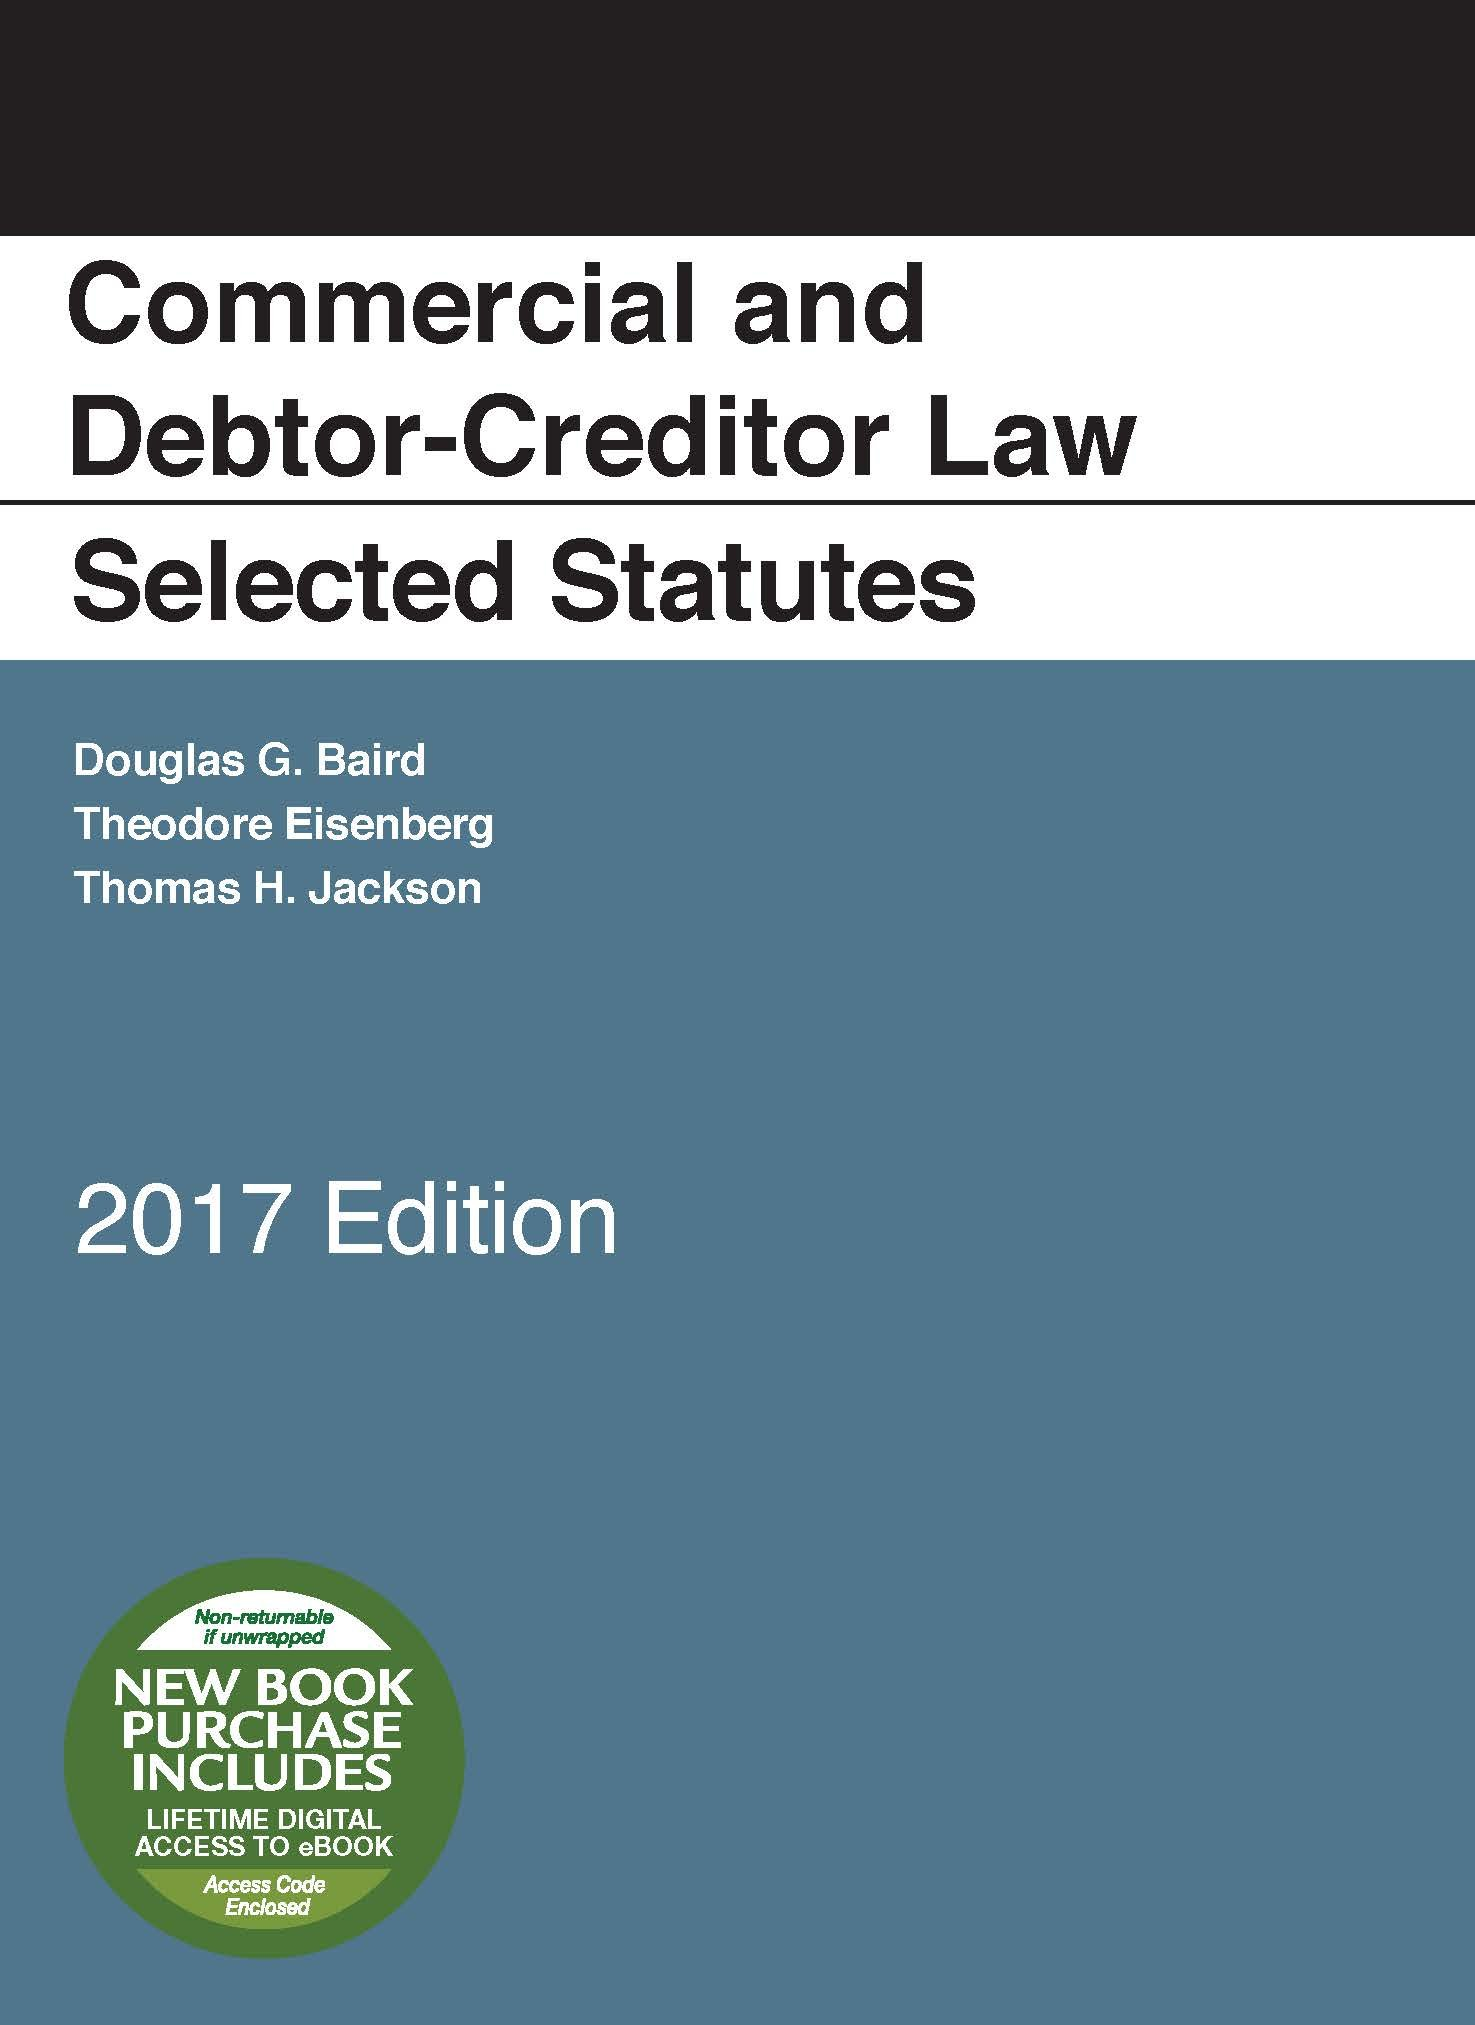 Commercial and debtor creditor law selected statutes 2017 livros commercial and debtor creditor law selected statutes 2017 livros na amazon brasil 9781683286257 fandeluxe Images